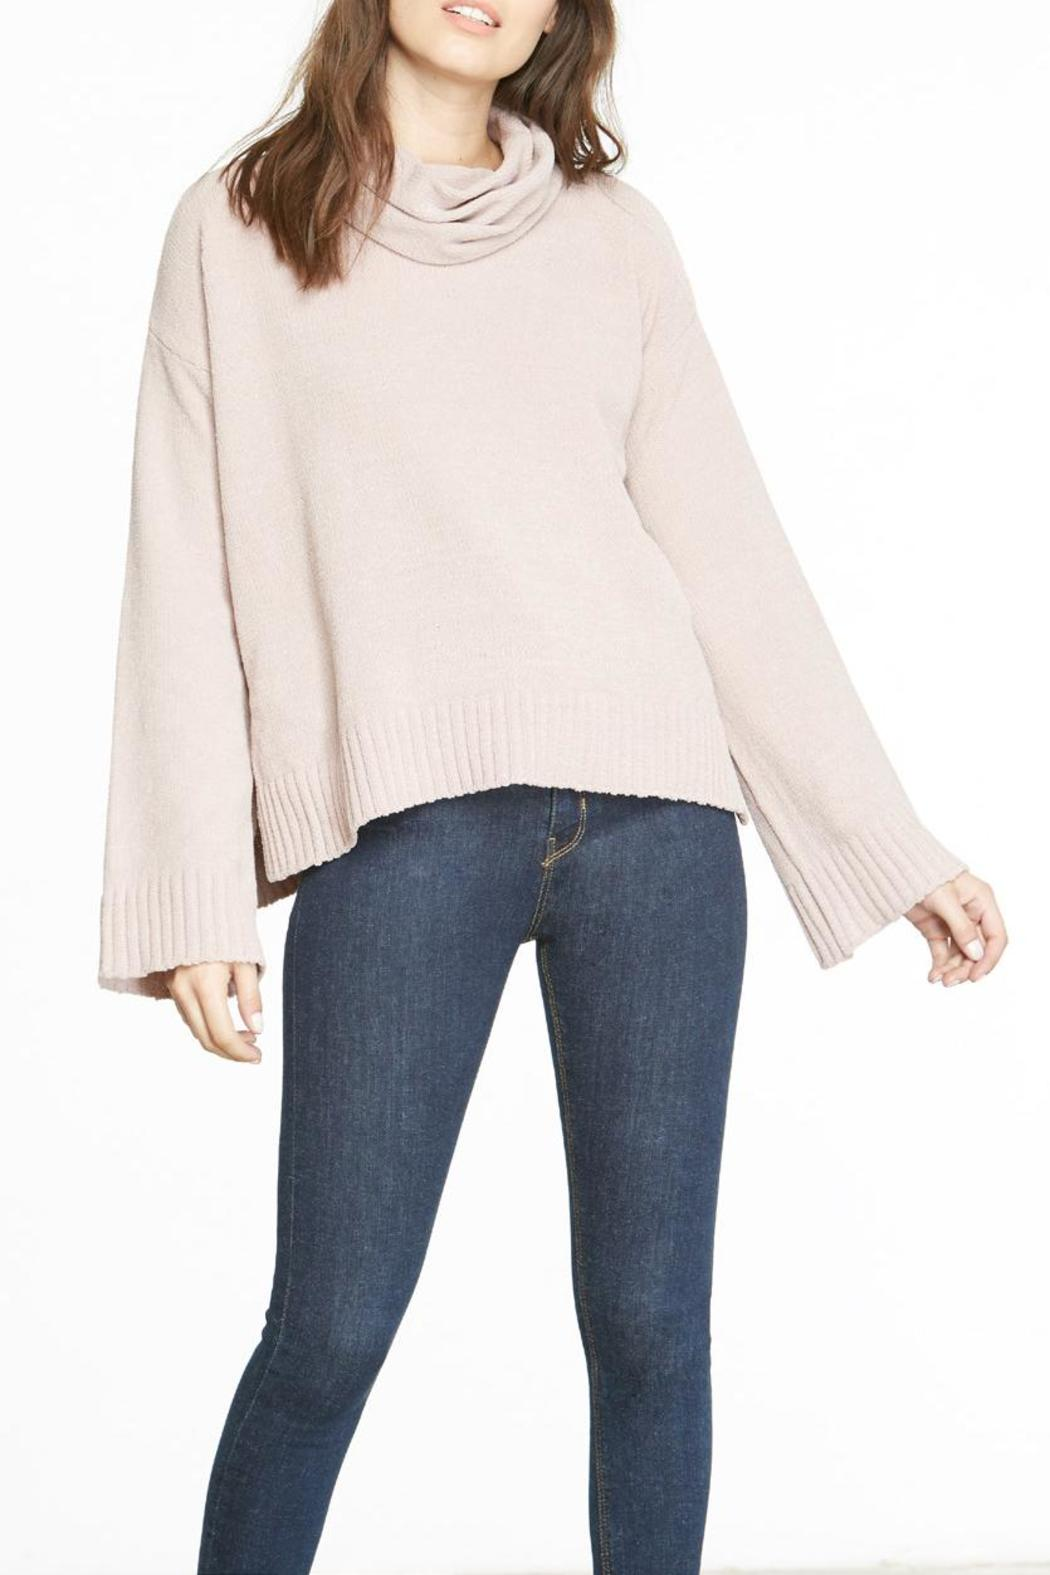 BB Dakota Cowl Neck Sweater from Canada by Blush and Vyne — Shoptiques